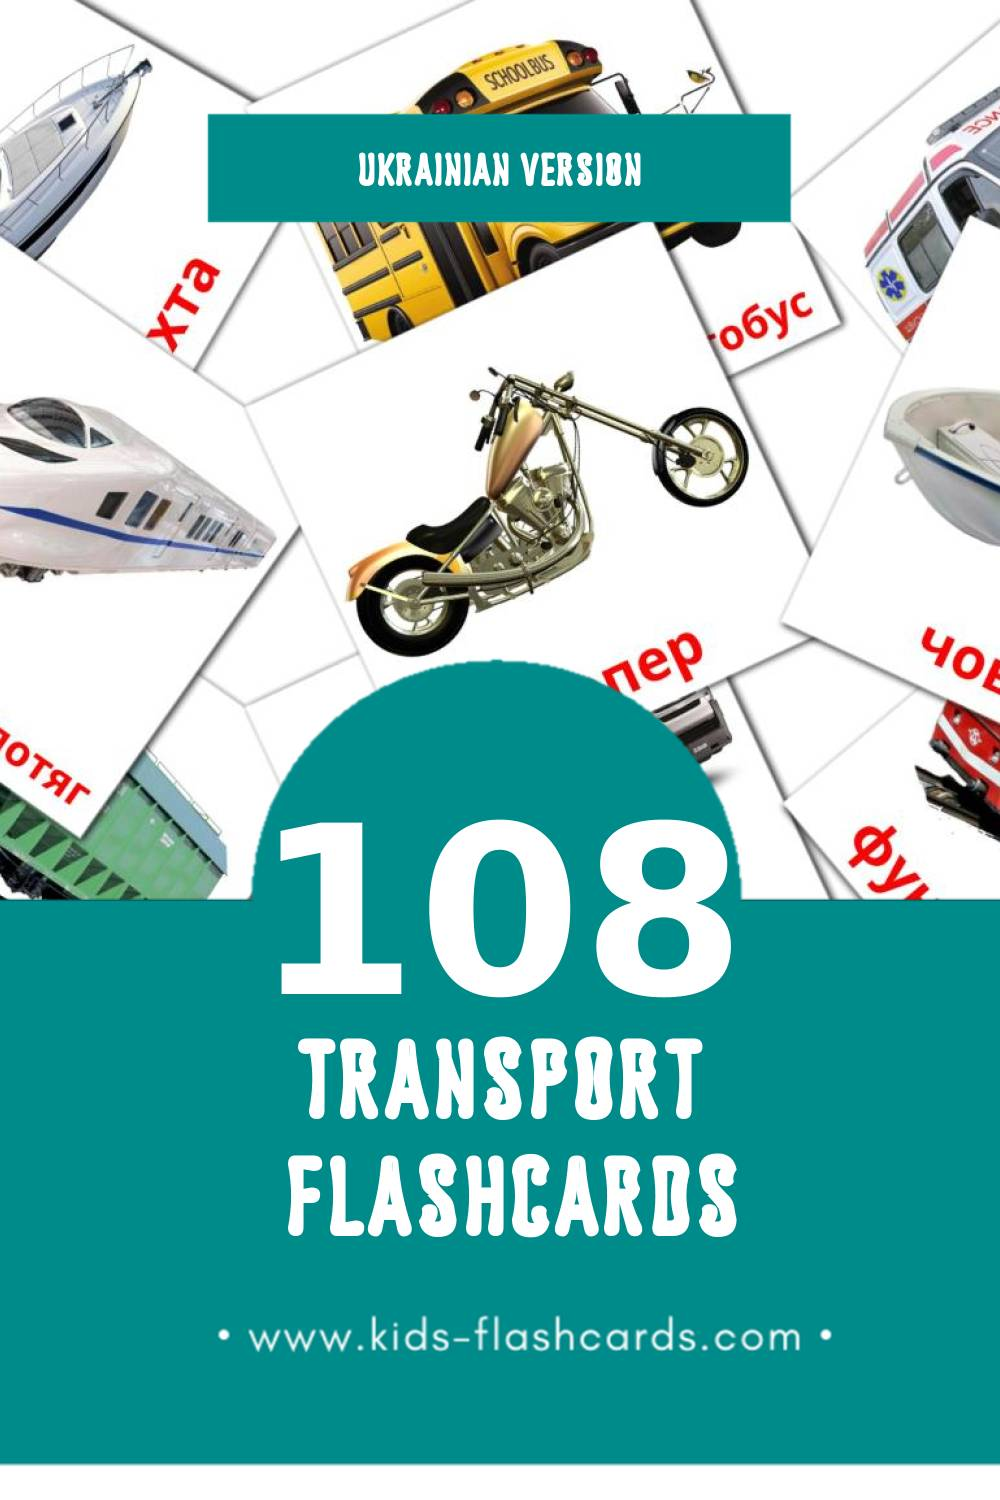 Visual Транспорт Flashcards for Toddlers (108 cards in Ukrainian)